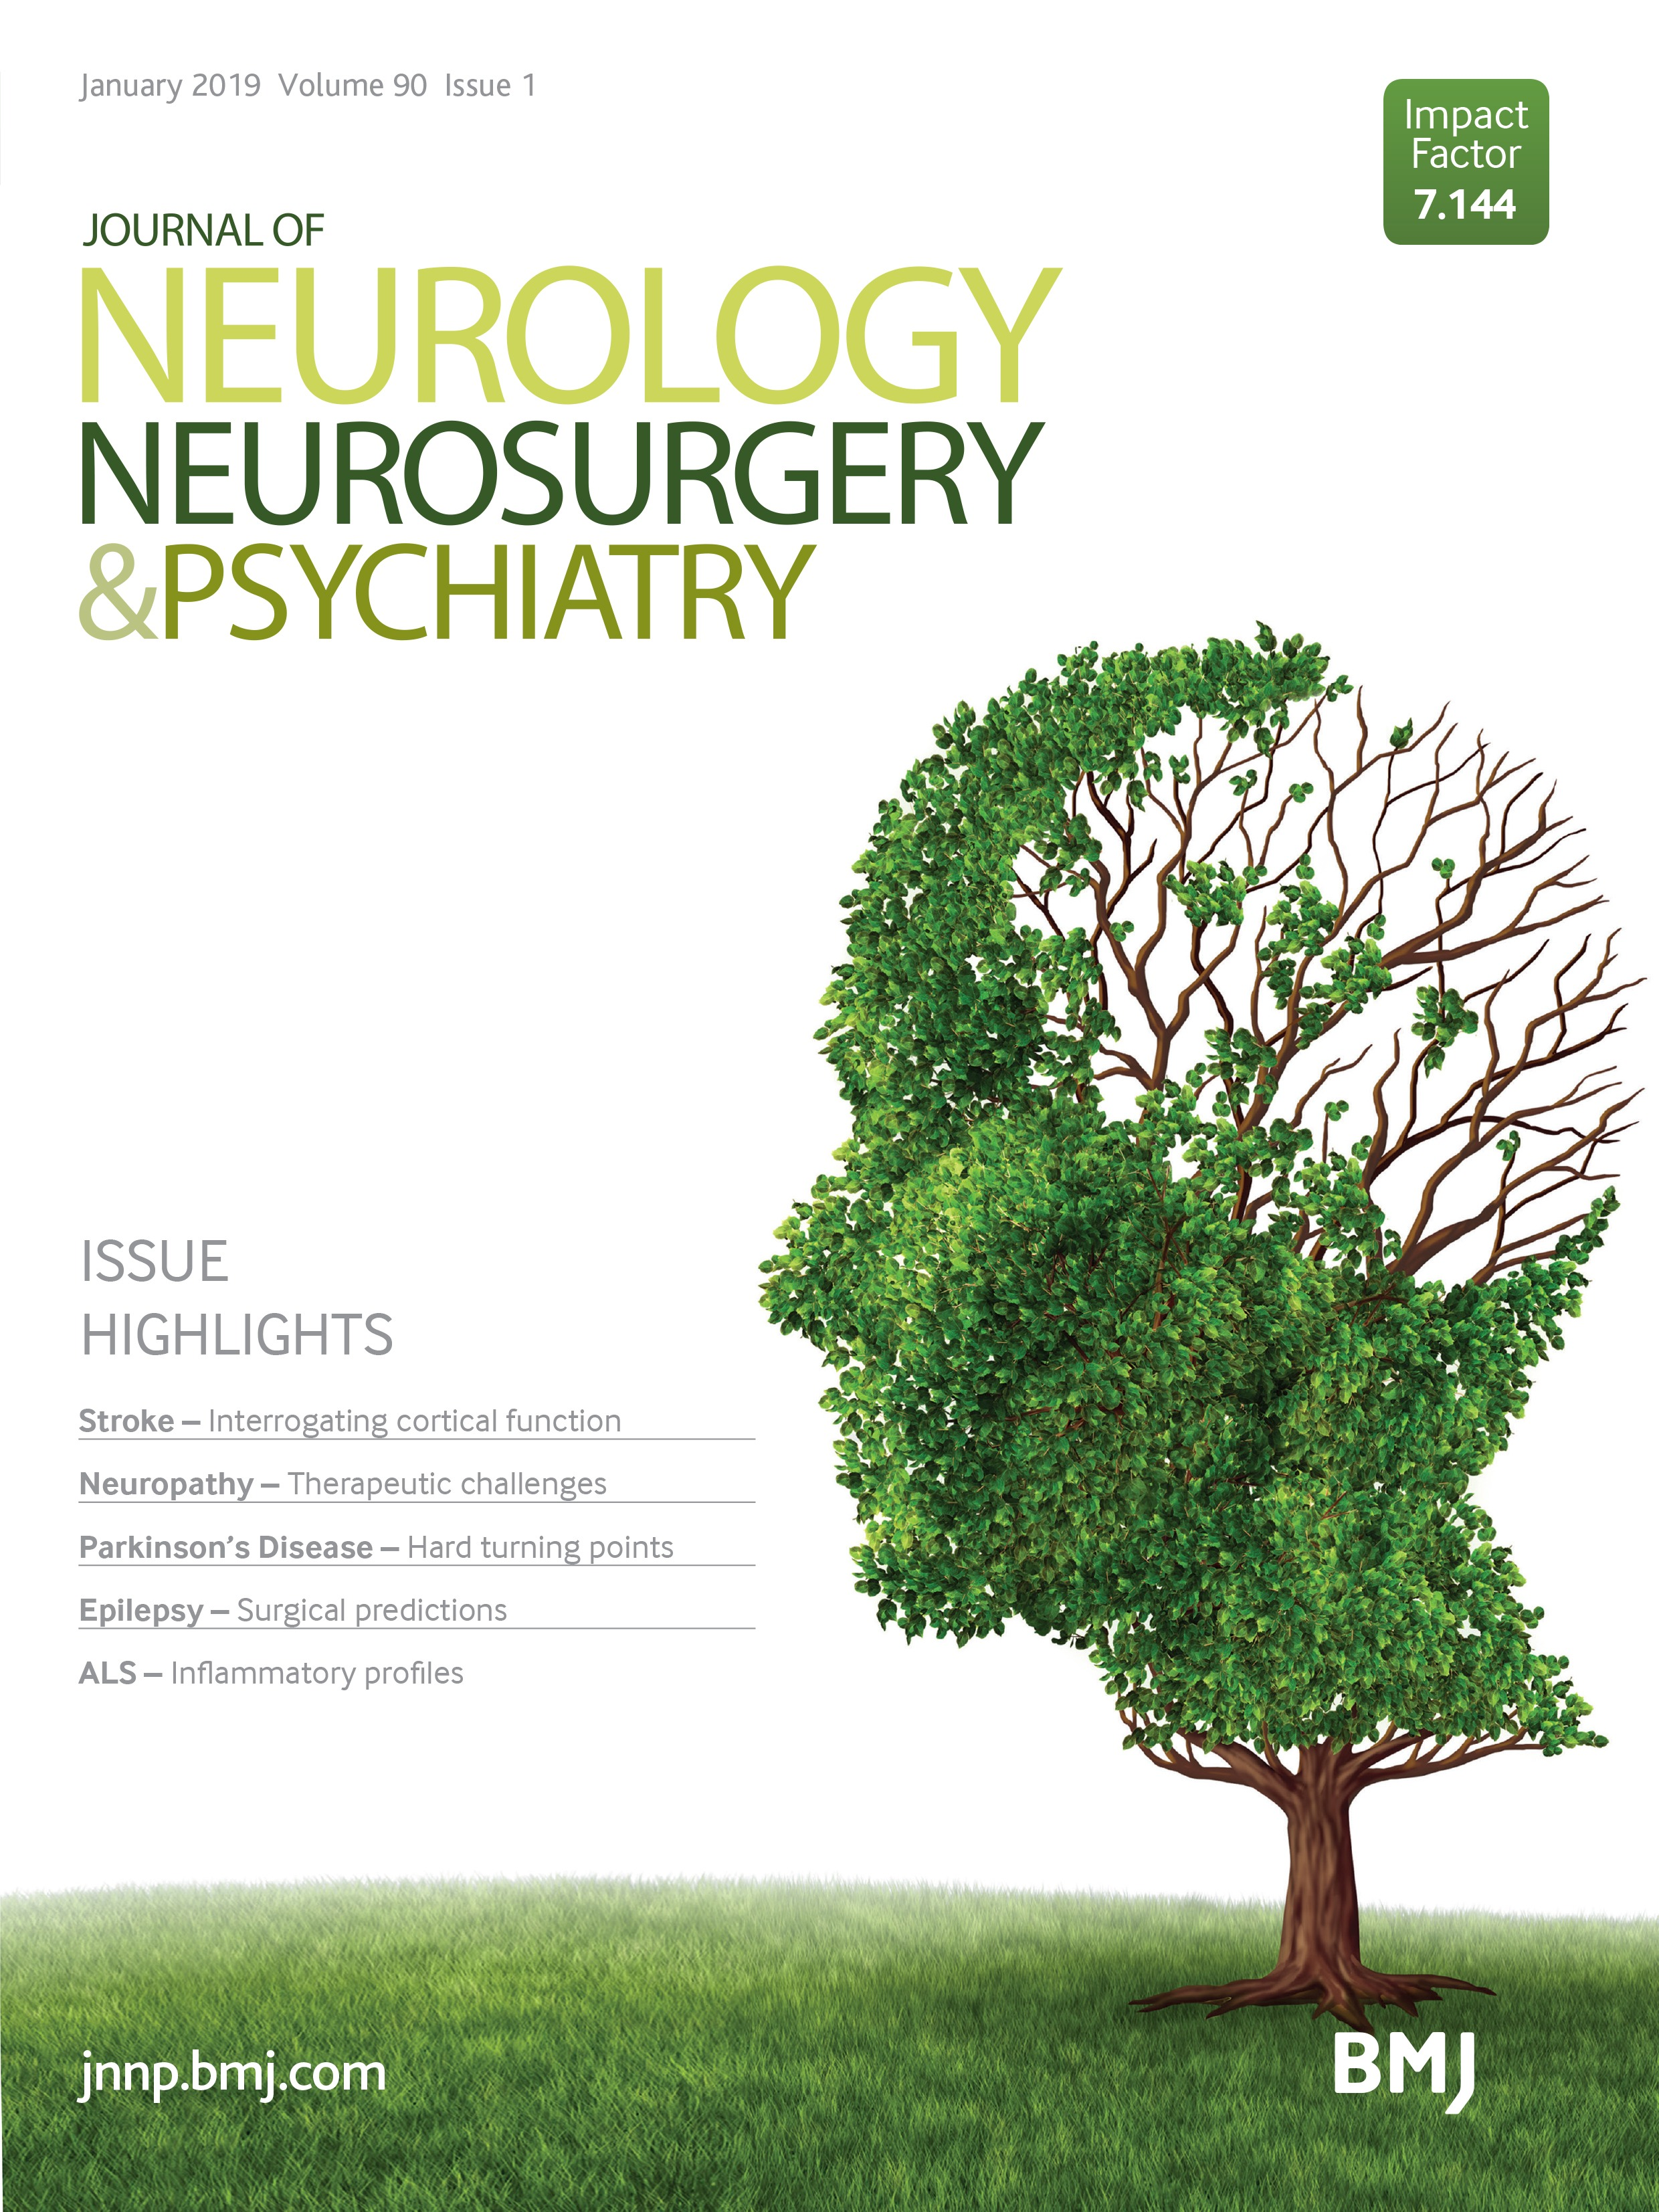 Challenges in modelling the Charcot-Marie-Tooth neuropathies for